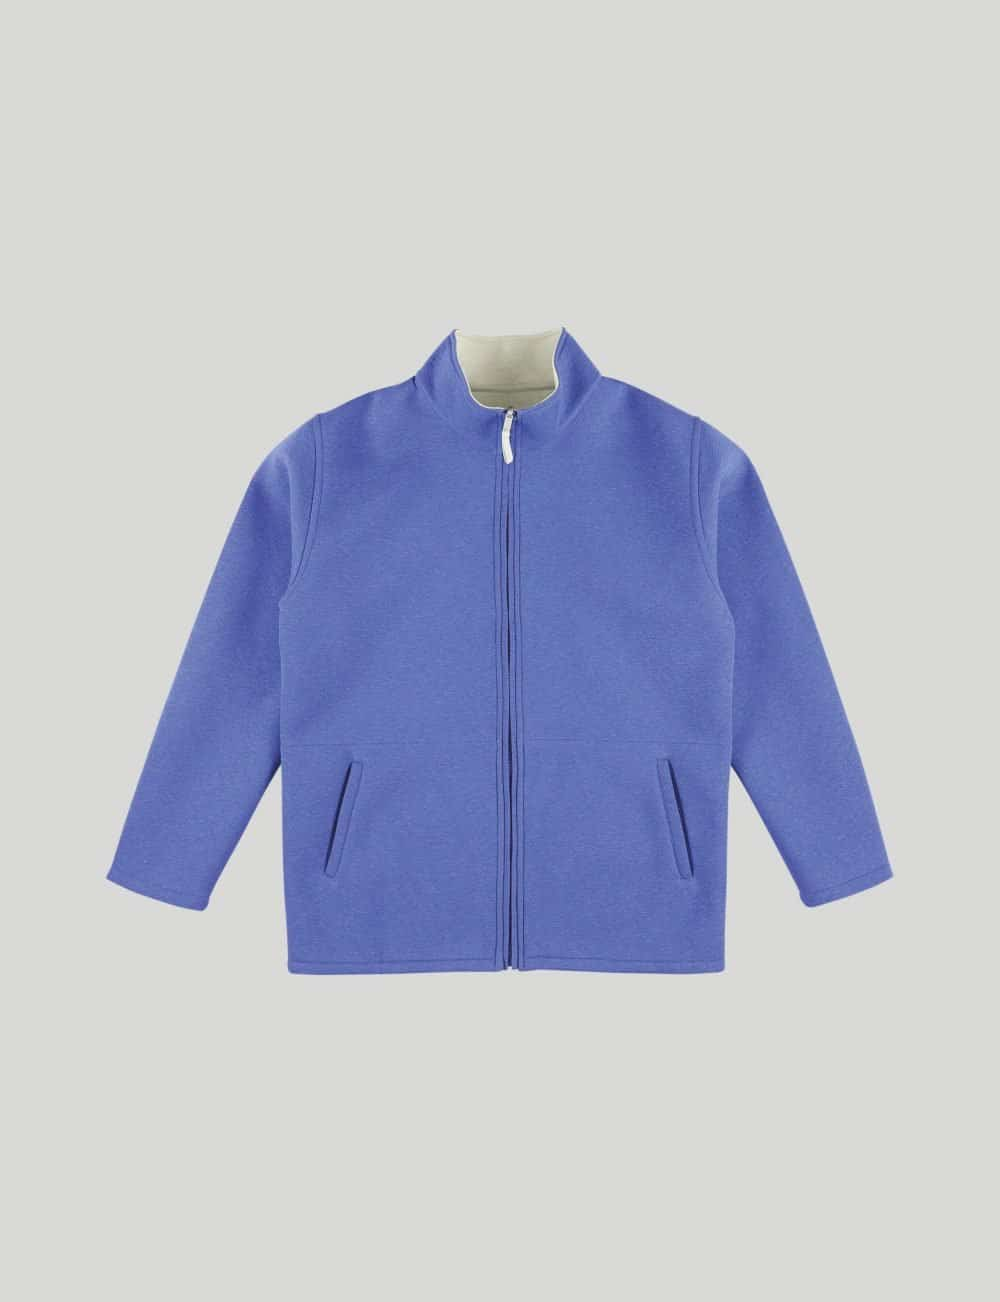 Castart - Weeping Jade Jacket - Royal Blue